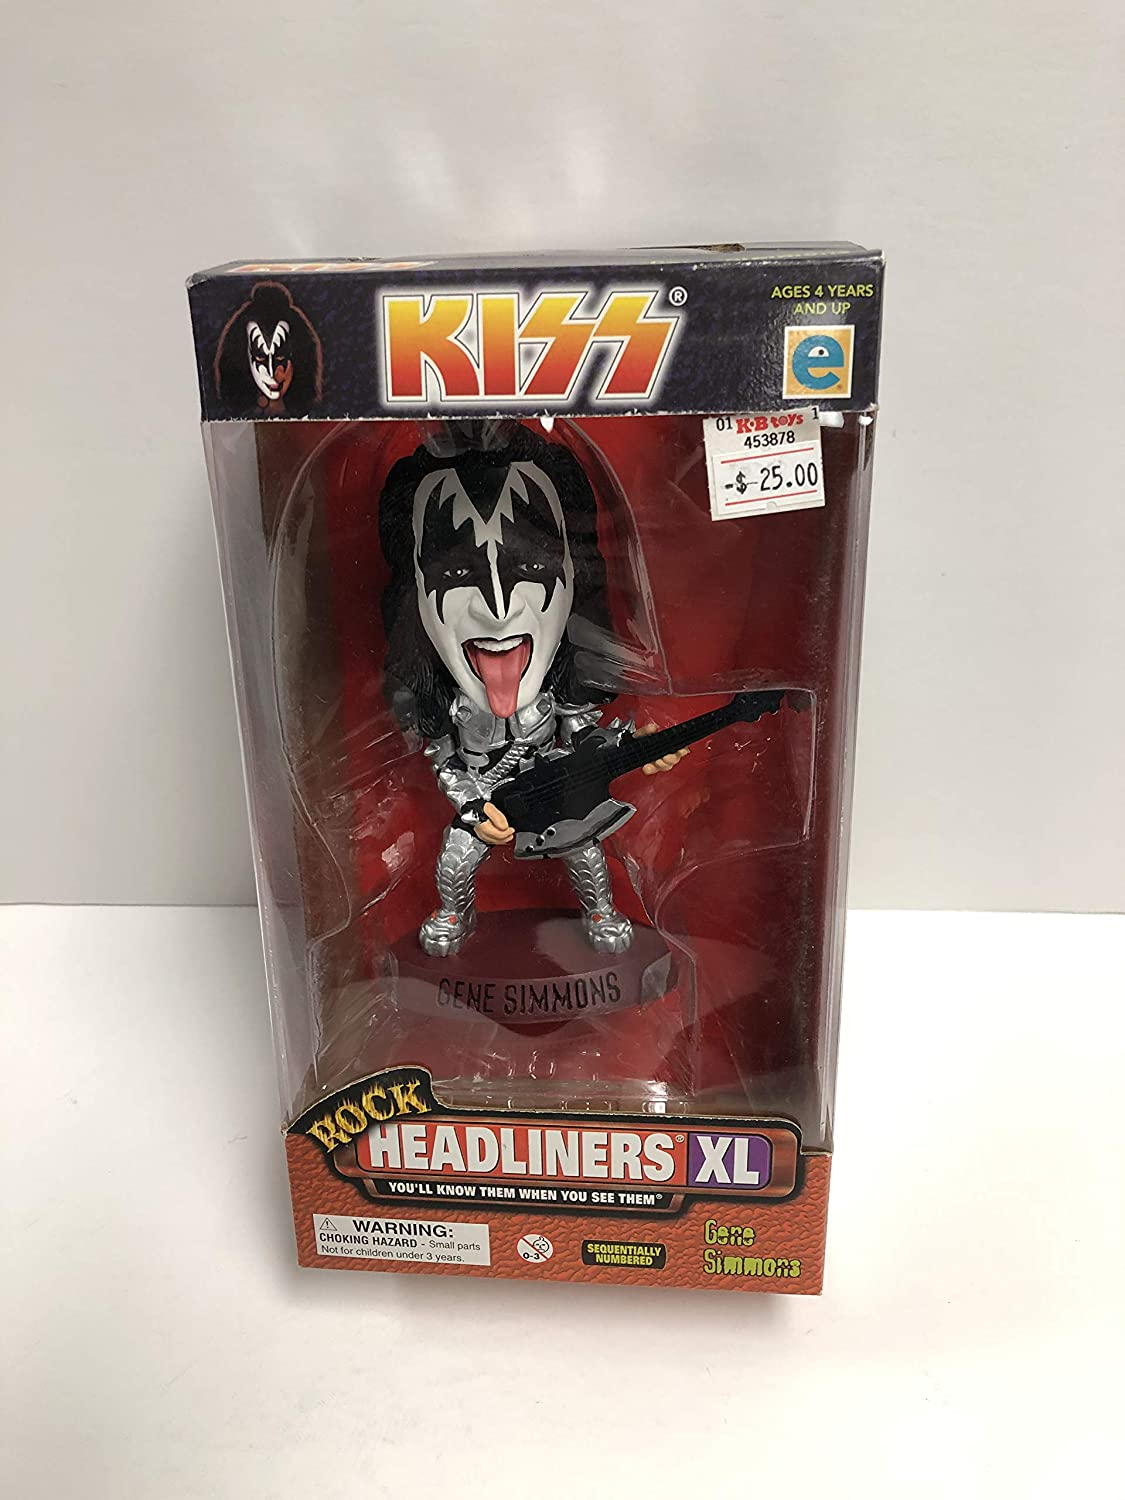 KISS Gene Simmons Rock Headliners XL Limited Edition Collectible Figure